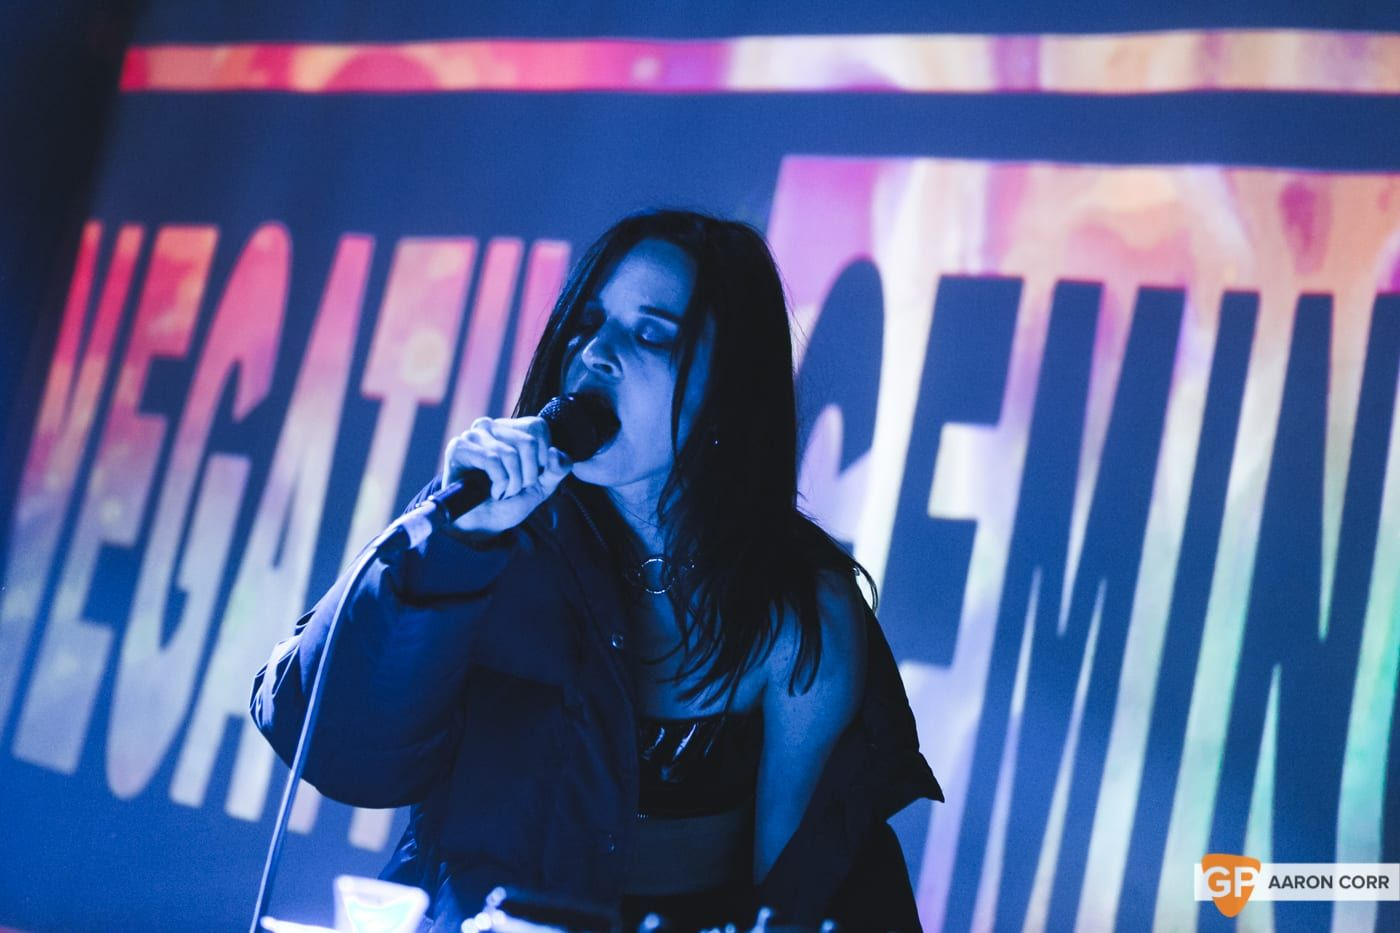 Negative Gemini at The Grand social by Aaron Corr-5820